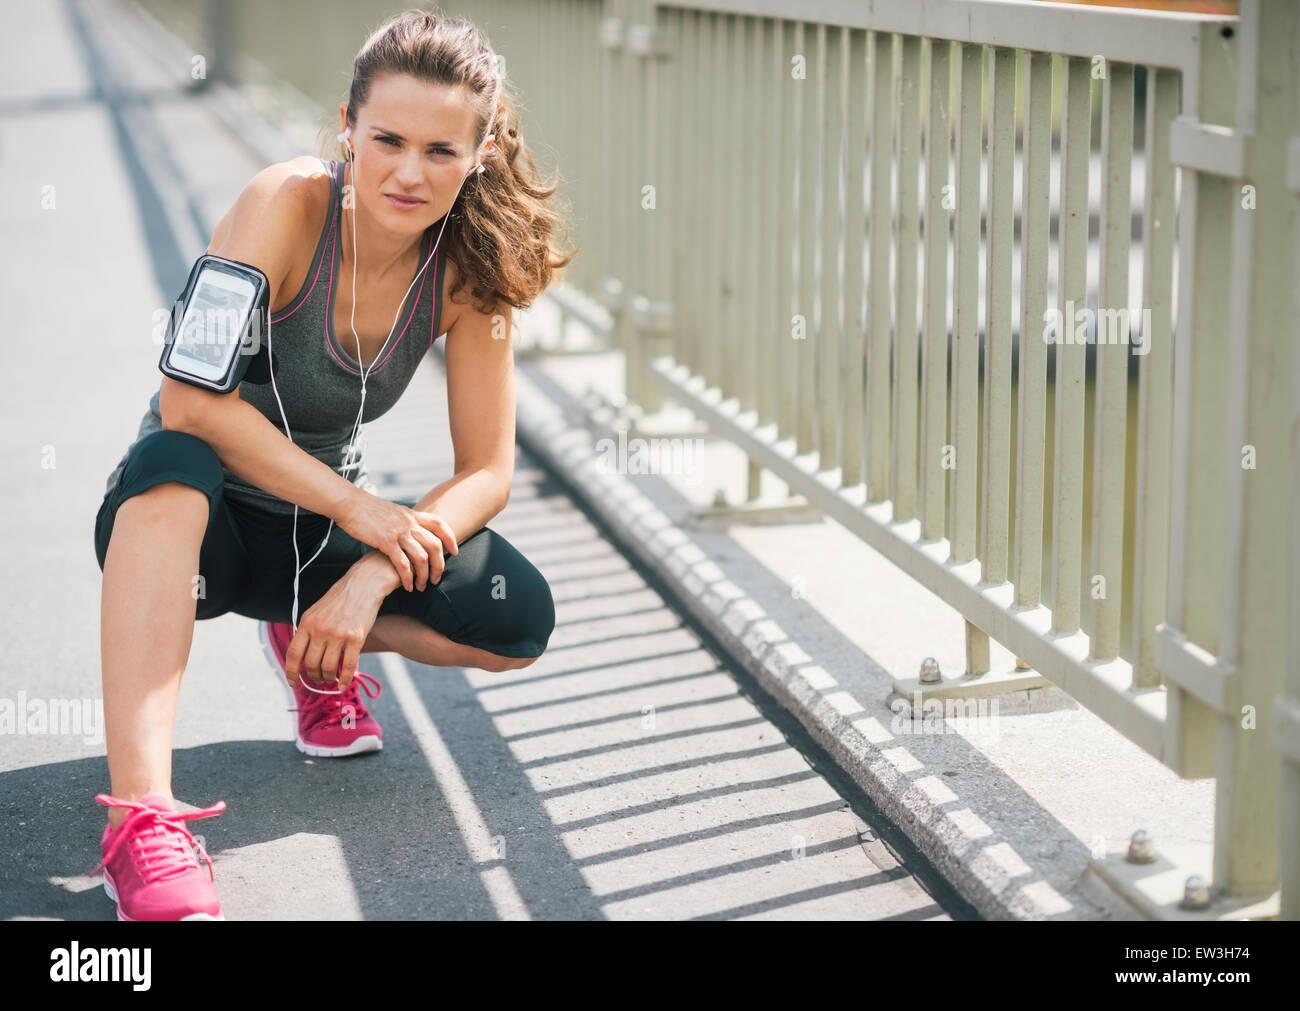 An athletic woman wearing earbuds and her device in a cuff on her arm is getting ready to go on a run. She is looking - Stock Image